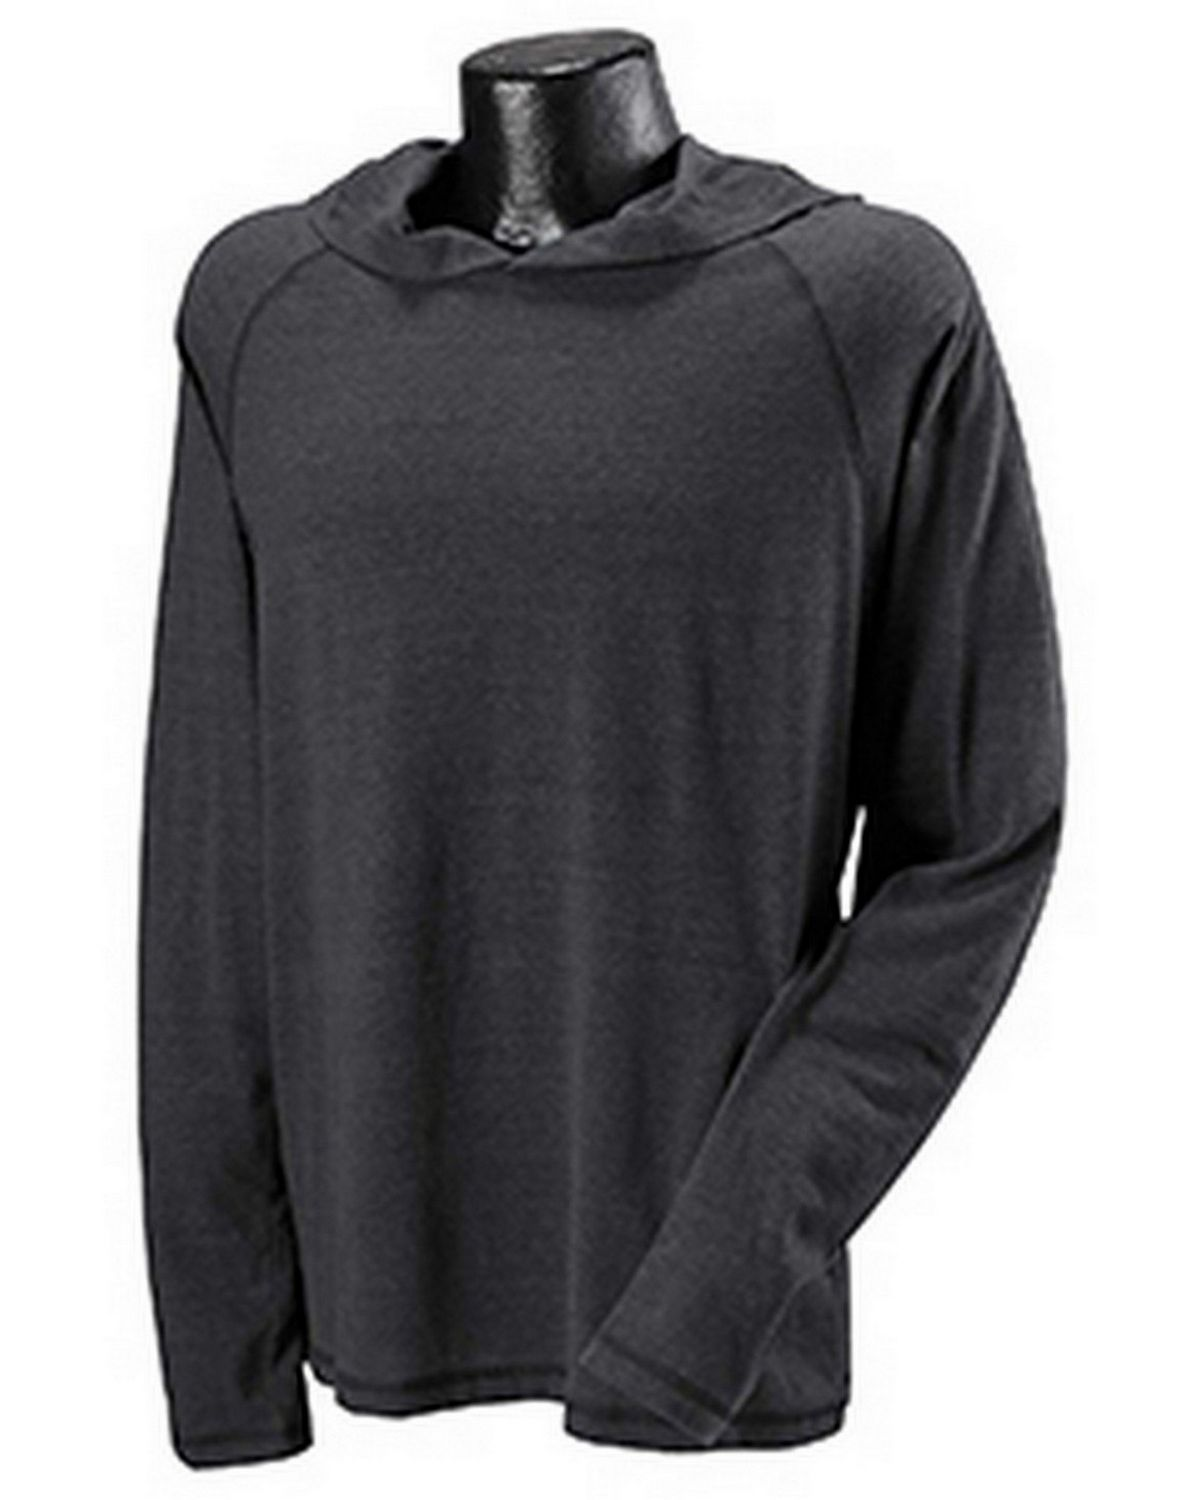 All Sport M3101Performance Triblend Jersey Long-Sleeve Hooded Pullover - Charcoal Heather Timberland - M M3101